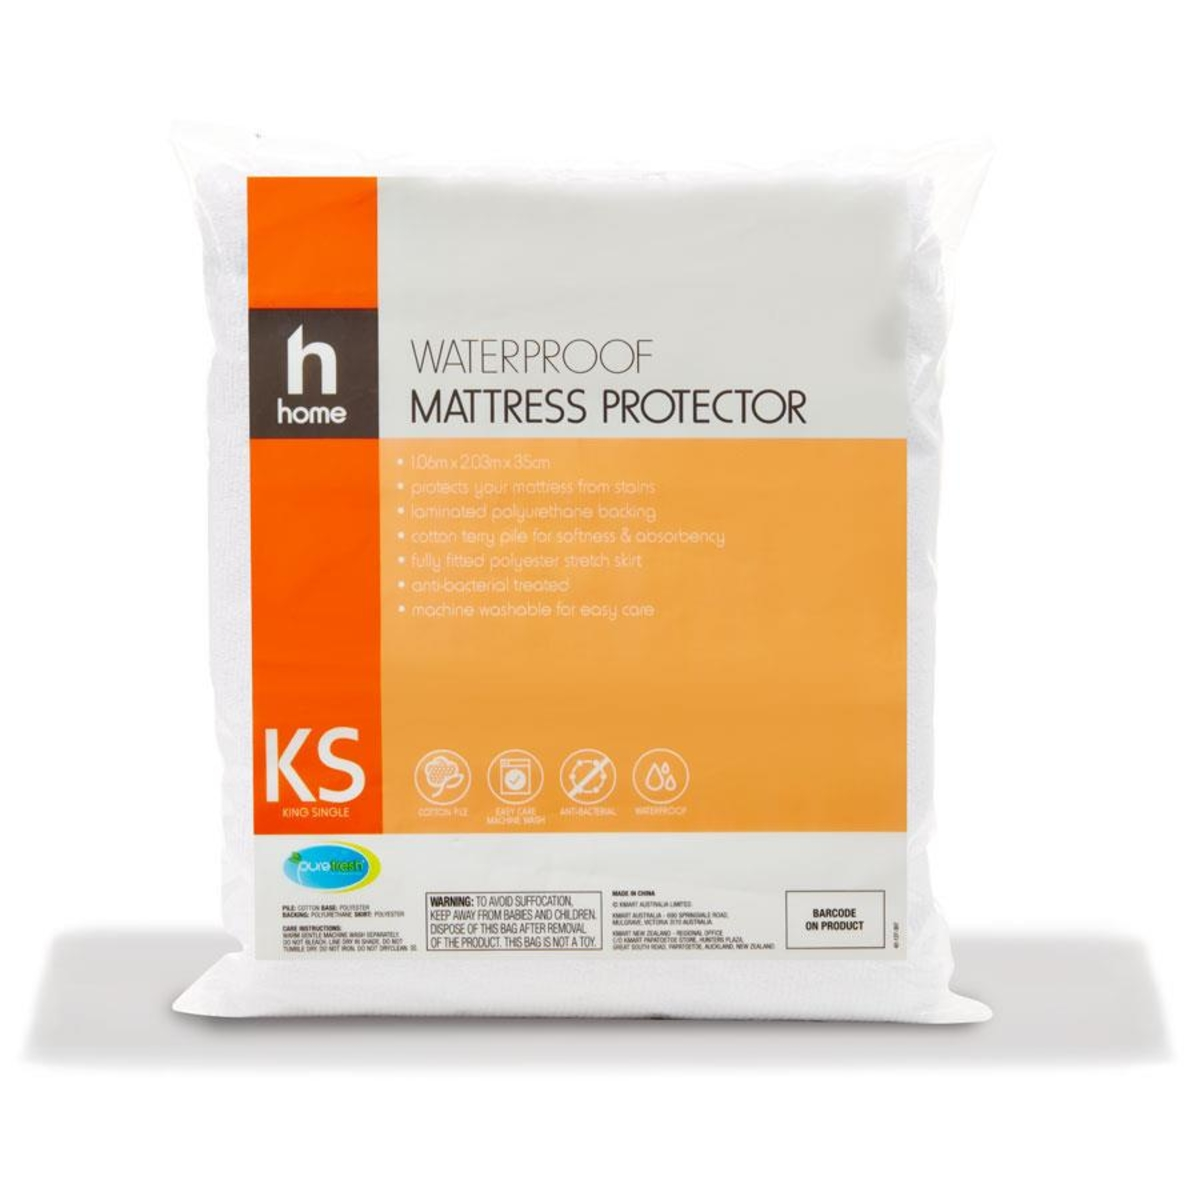 KS Single Mattress Waterproof protector